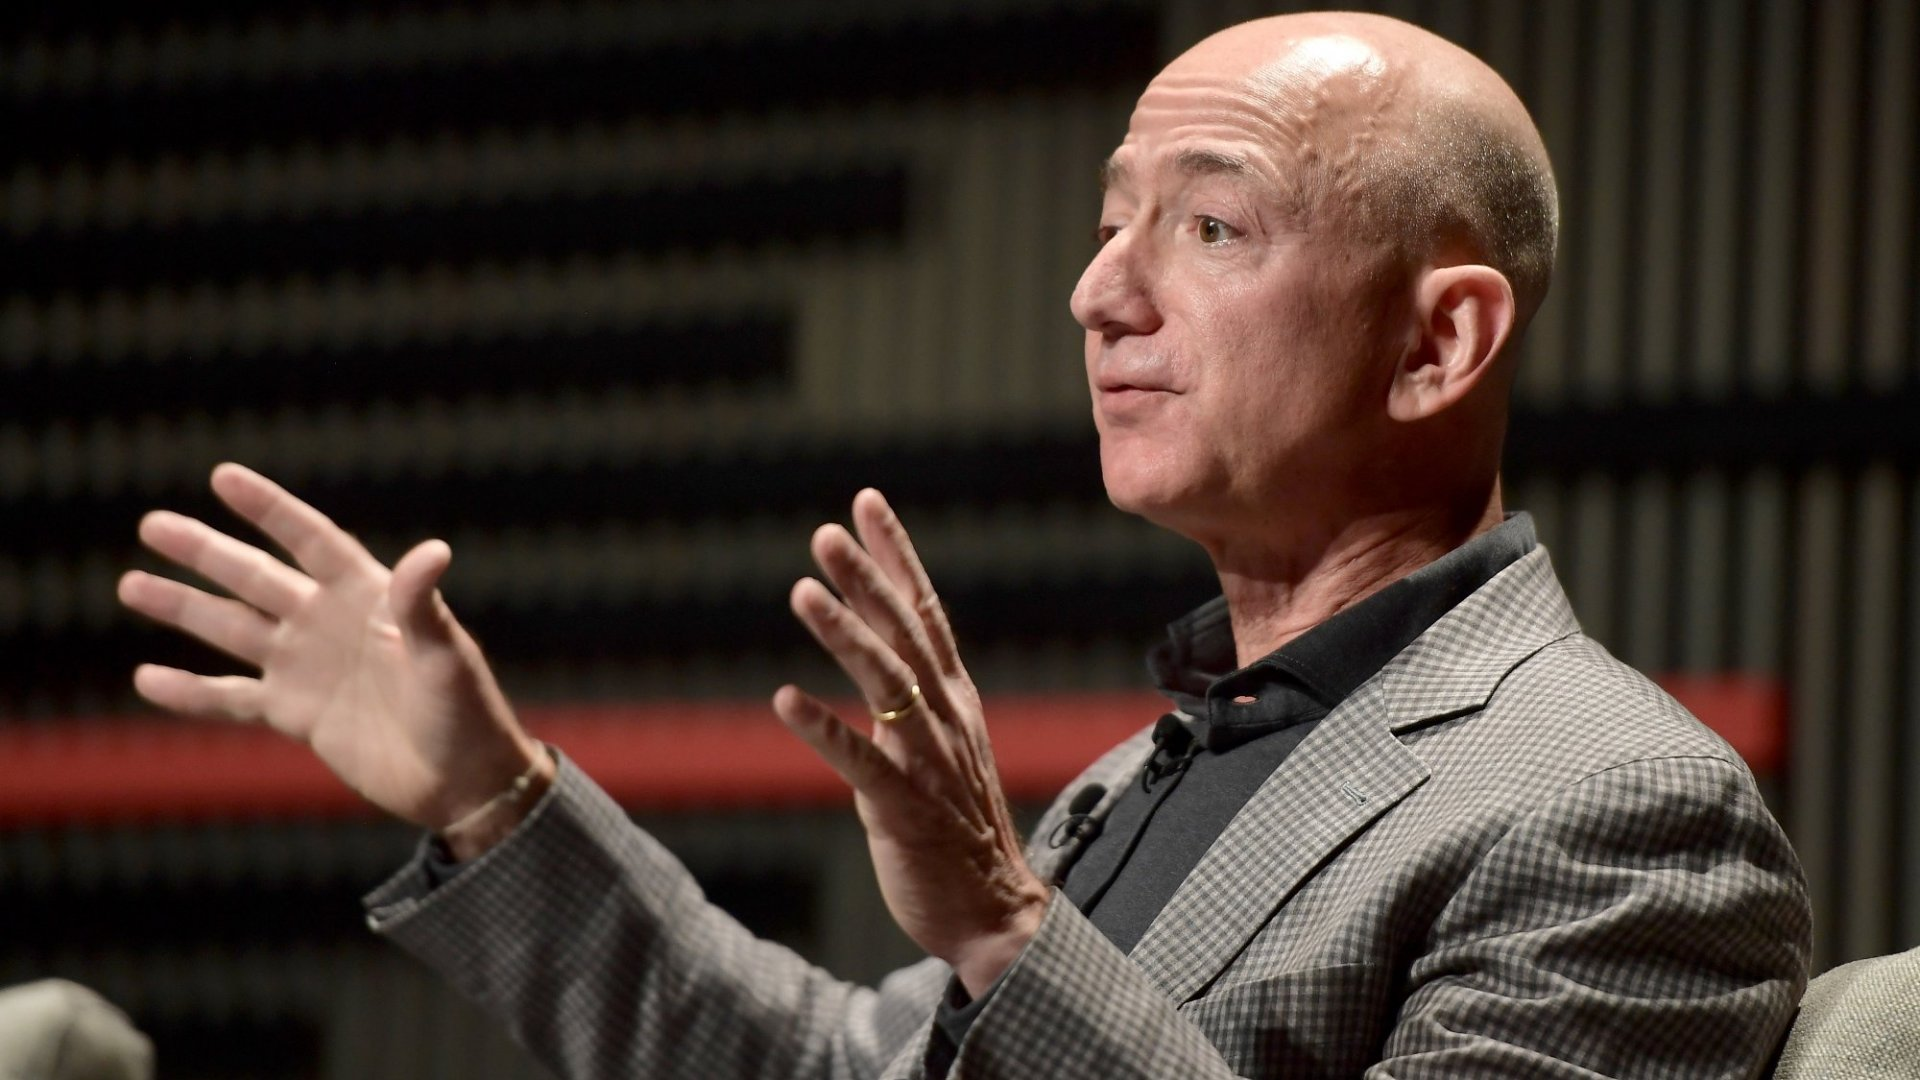 Jeff Bezos Just Opened Up to His Employees With 7 Surprising Words About His Personal Life